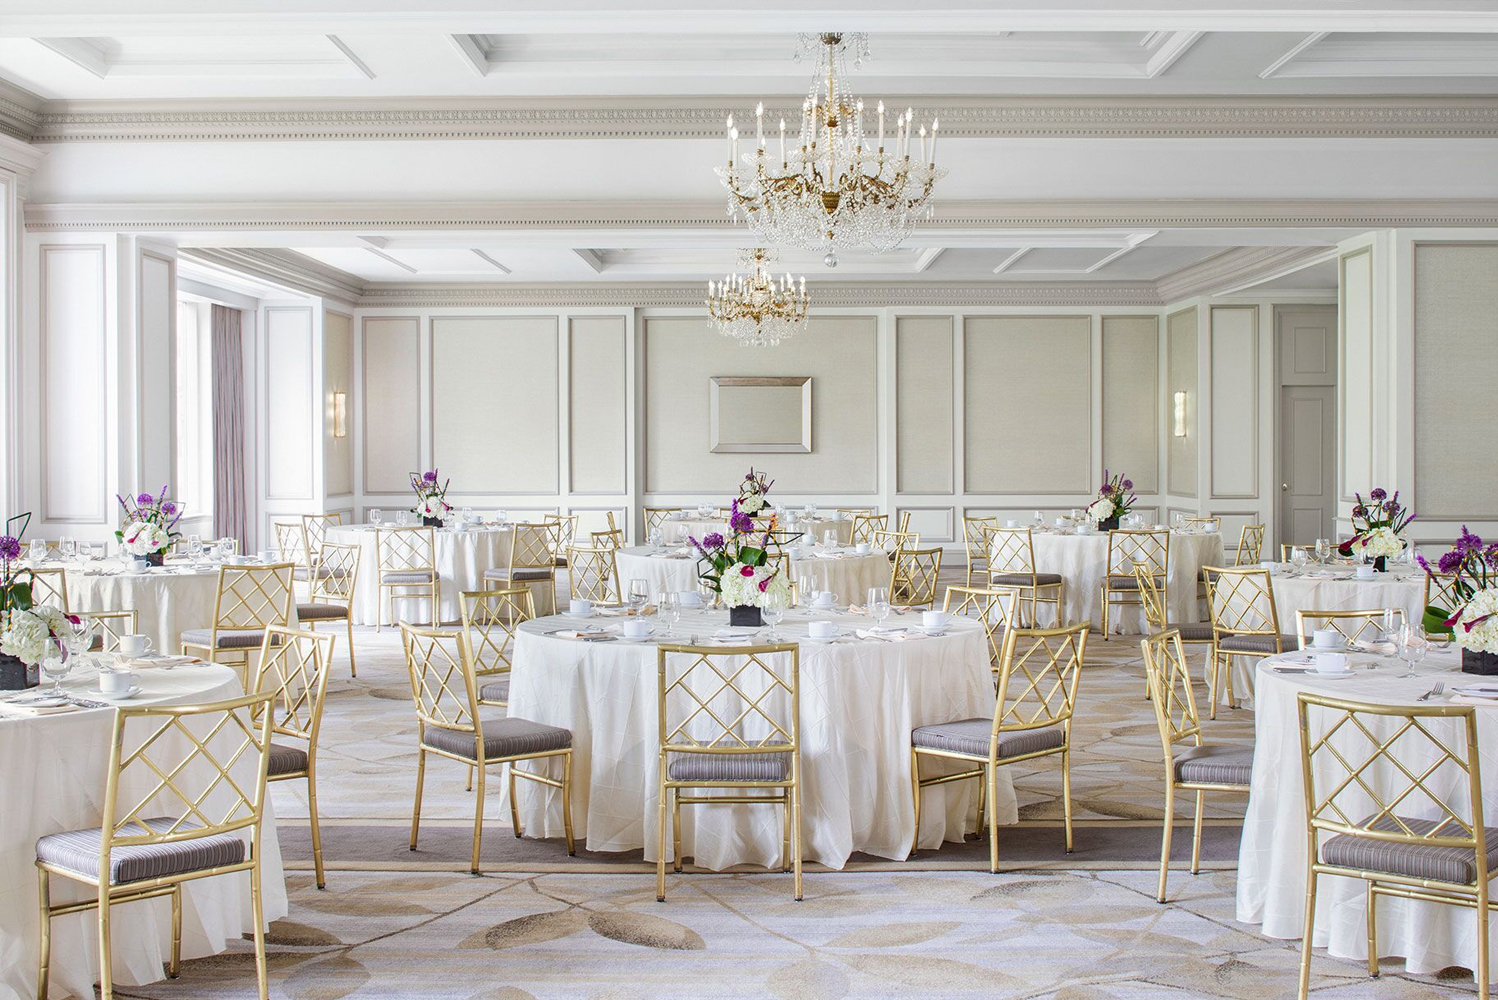 The Westin Philadelphia completed a $2 million renovation to its event spaces, including the Grand Ballroom and the Georgian Room with views overlooking 17th Street.